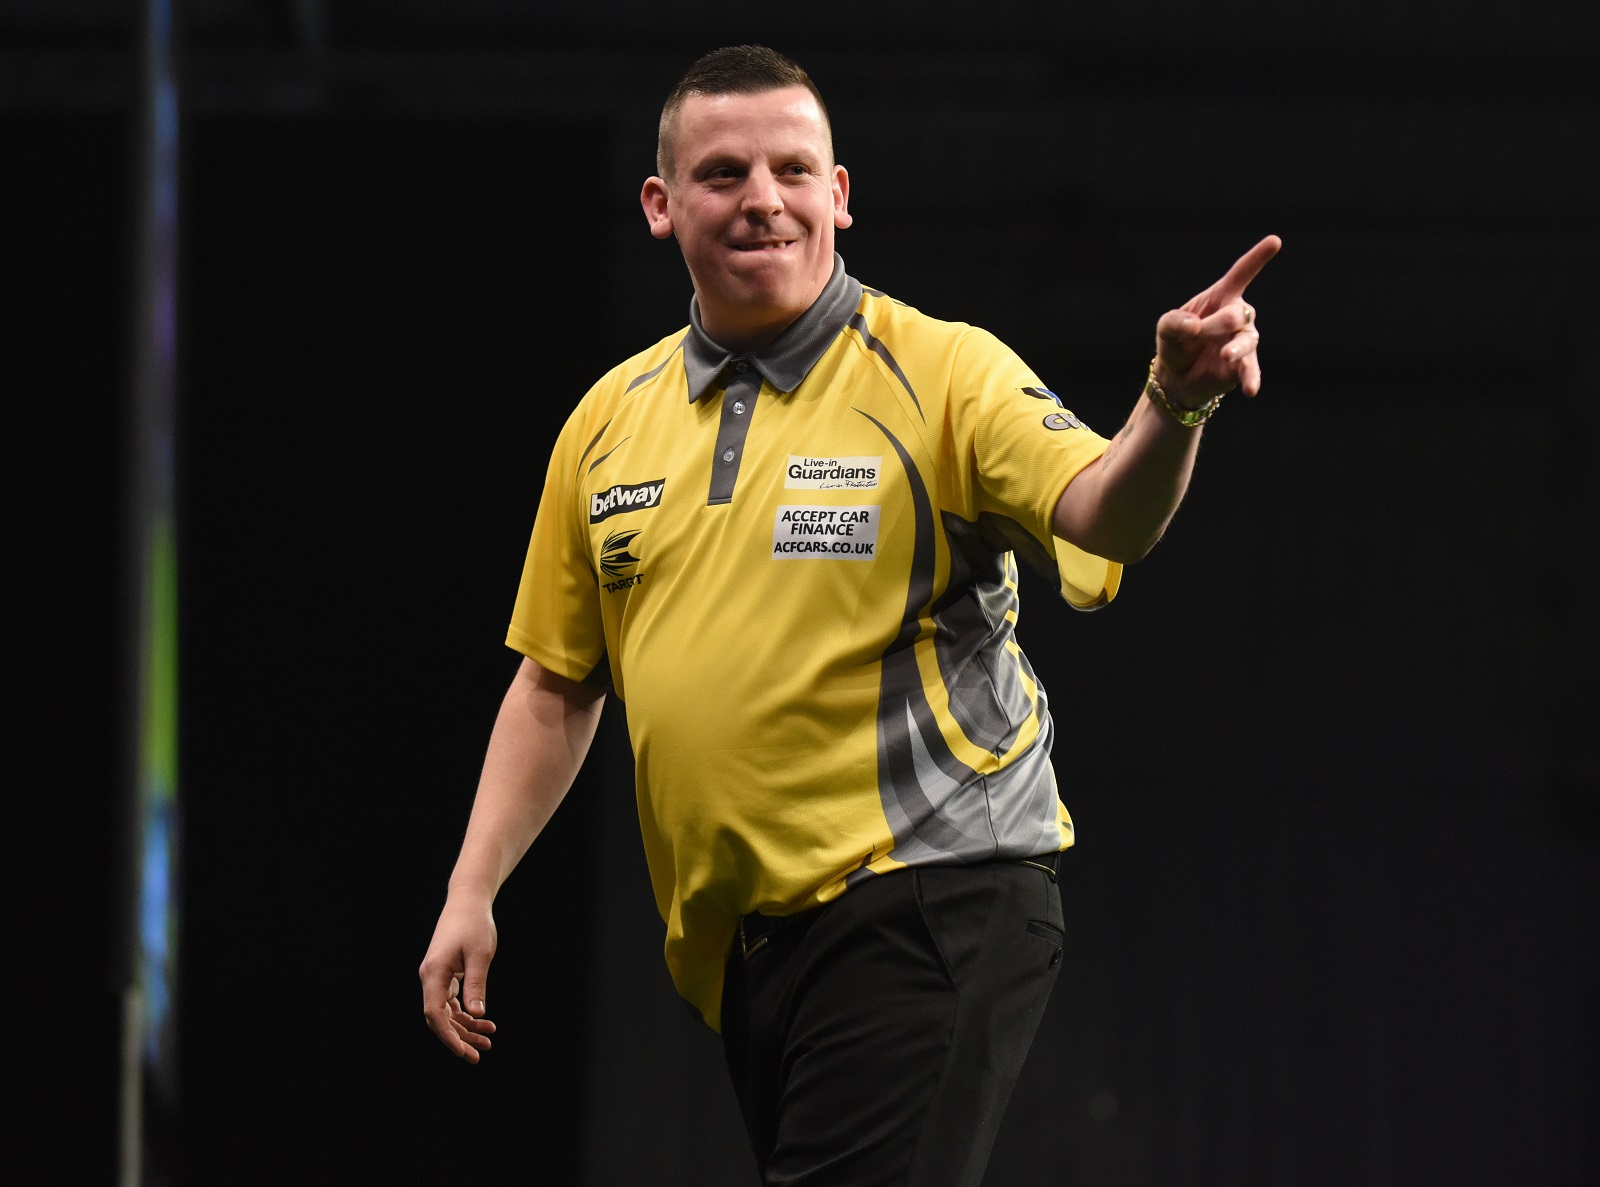 Dave Chisnall. Picture by Lawrence Lustig, PDC